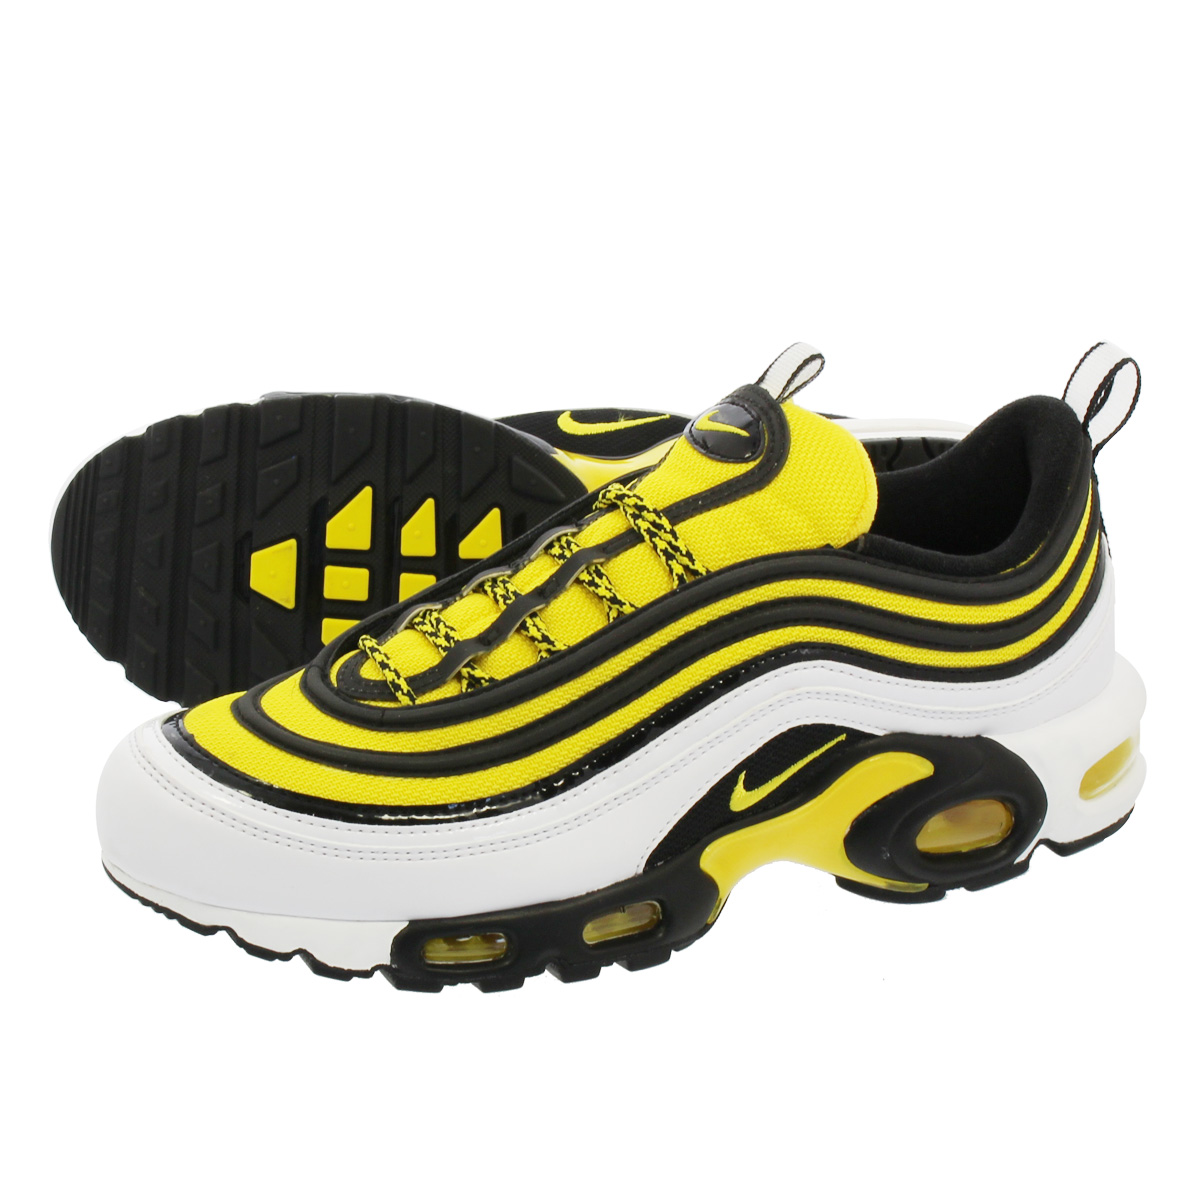 NIKE AIR MAX PLUS 97 【FREQUENCY PACK】 ナイキ エア マックス プラス 97 TOUR WHITE/YELLOW/BLACK av7936-100